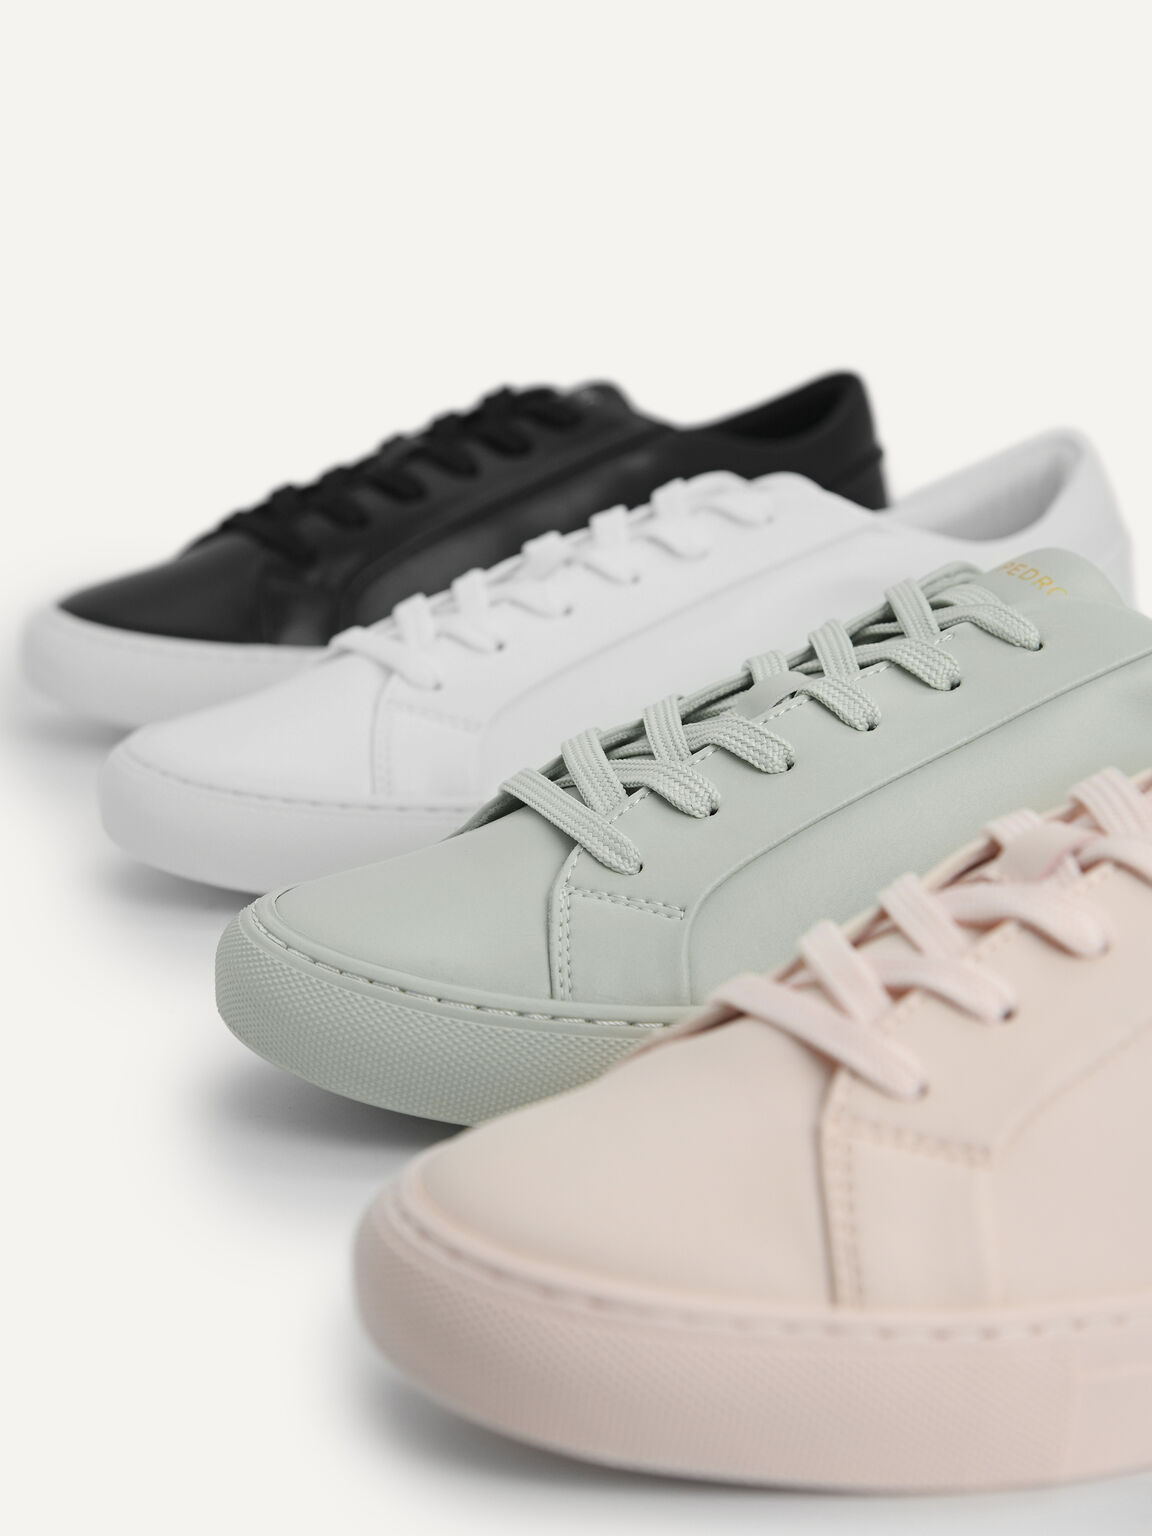 Atlas Lace-up Sneakers, Light Green, hi-res